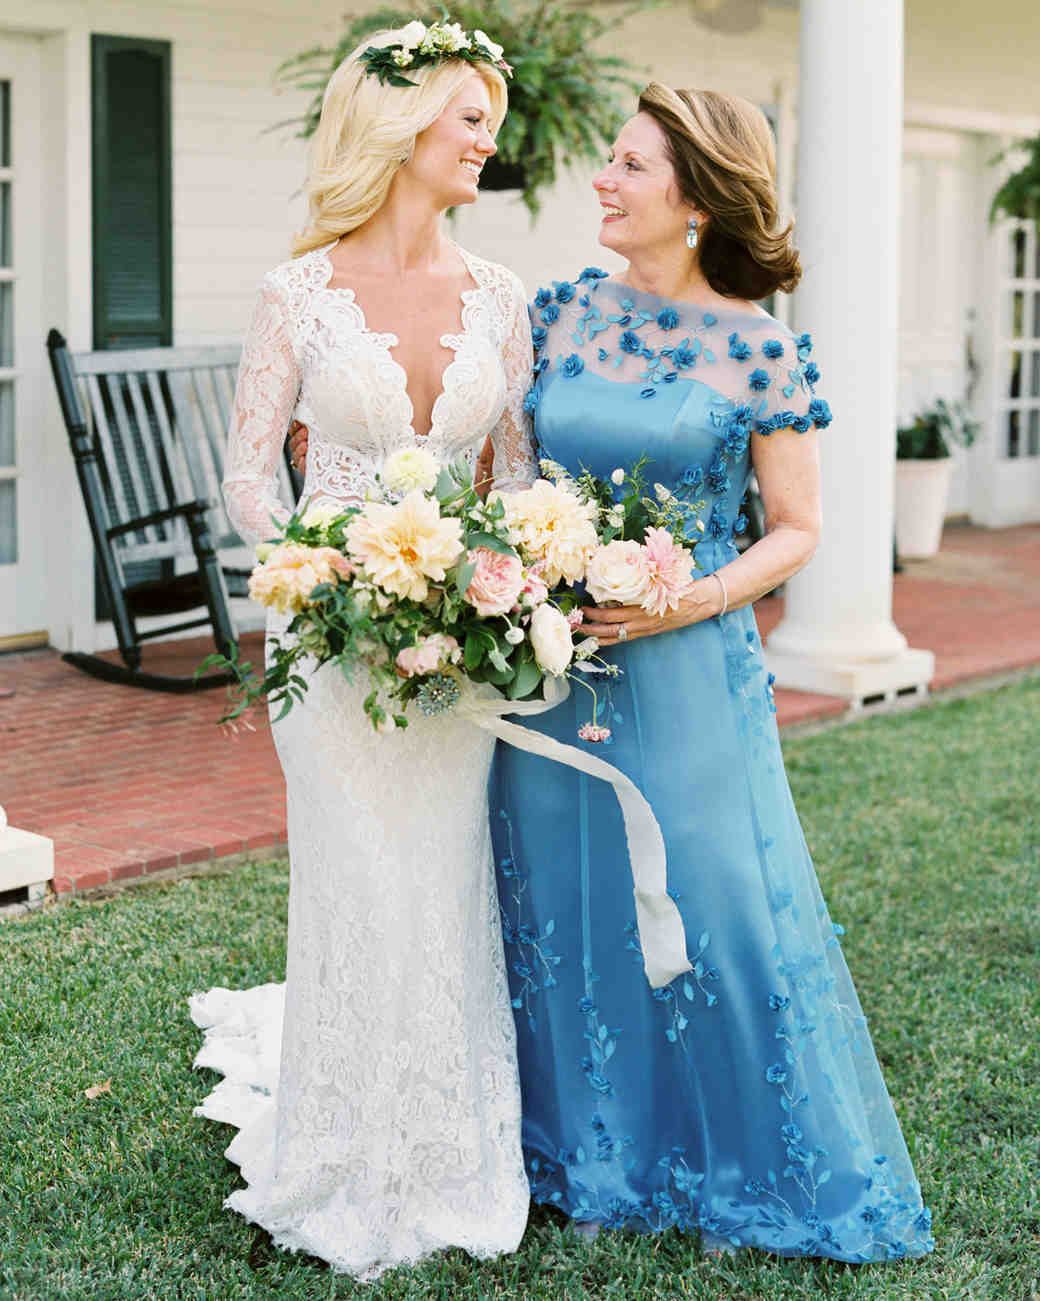 Blue Mother Of The Bride Dress: Morning Garden Wedding Dresses At Websimilar.org